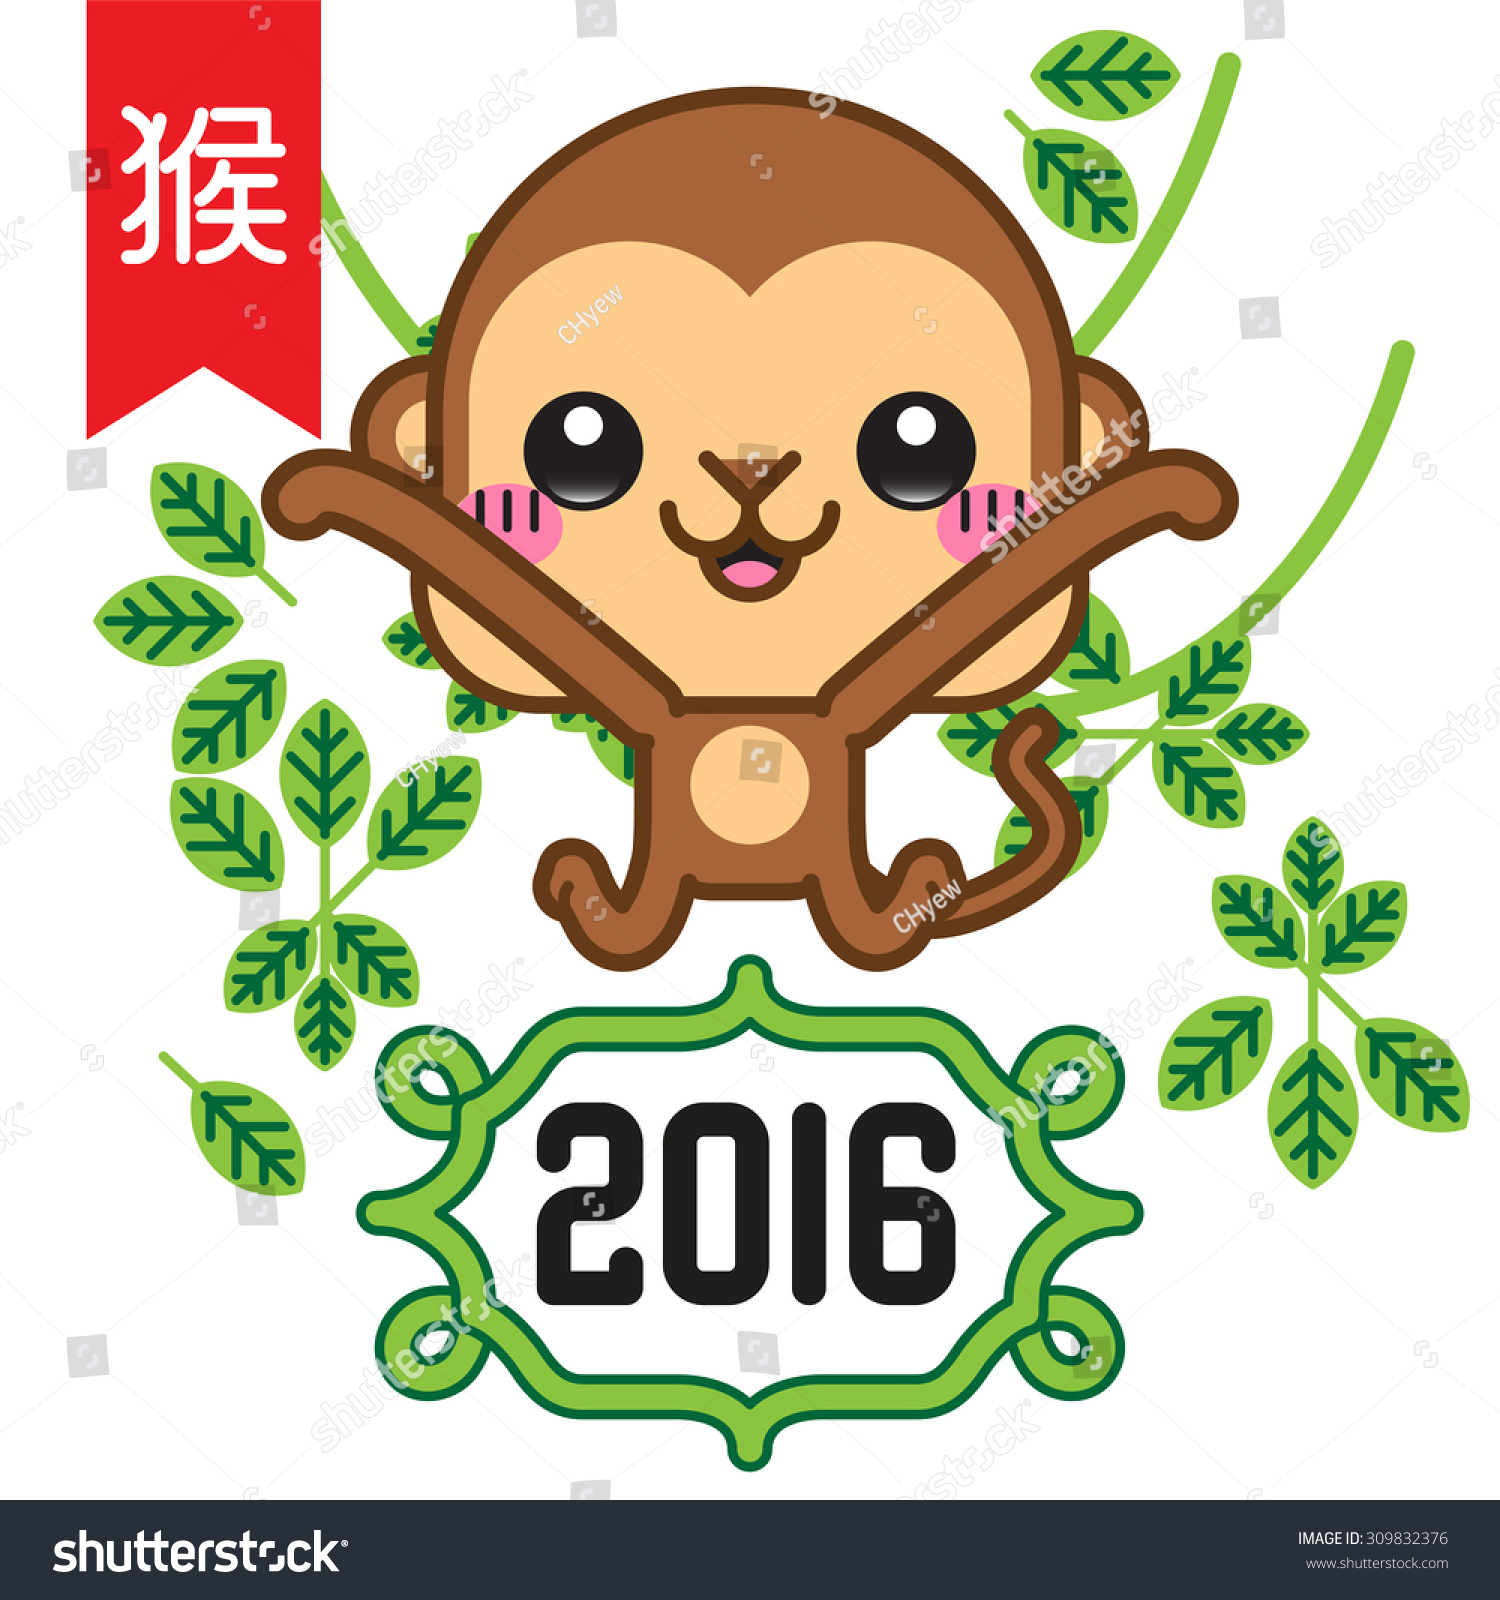 Year Of The Monkey clipart Free 2016 Clipart with Of